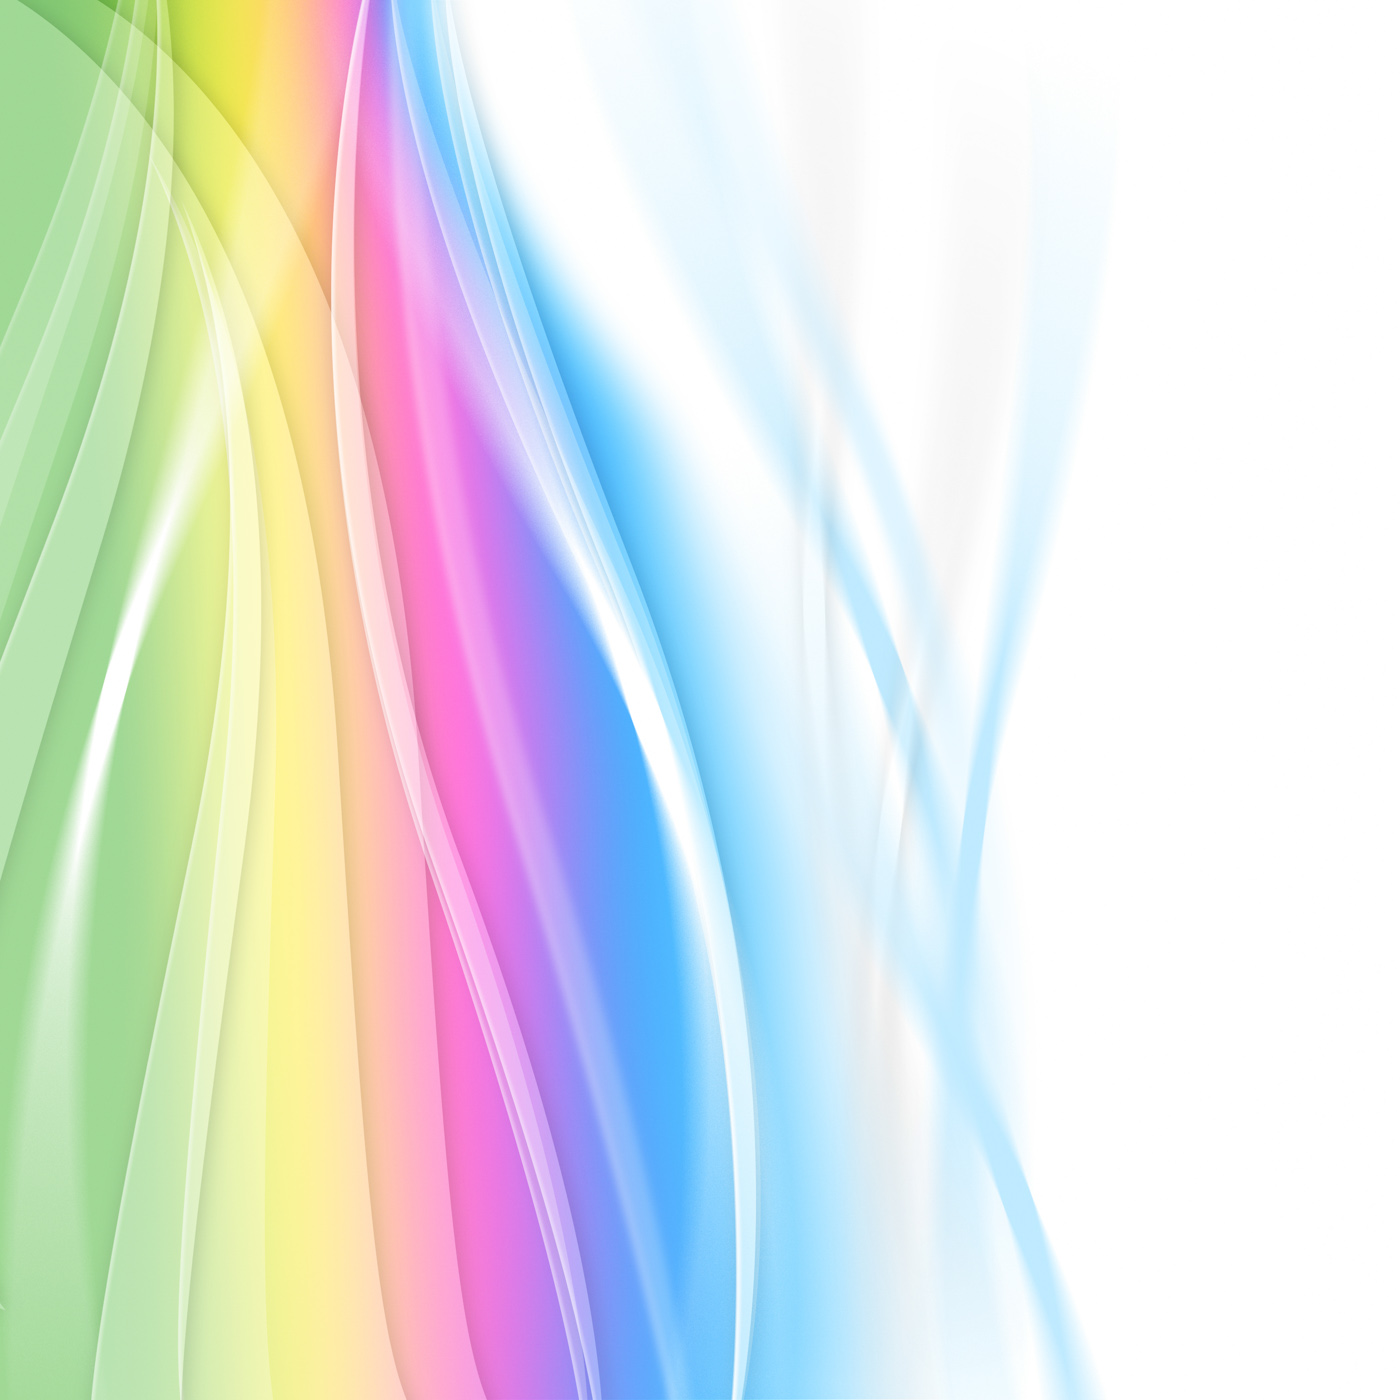 Pastel color indicates text space and abstract photo